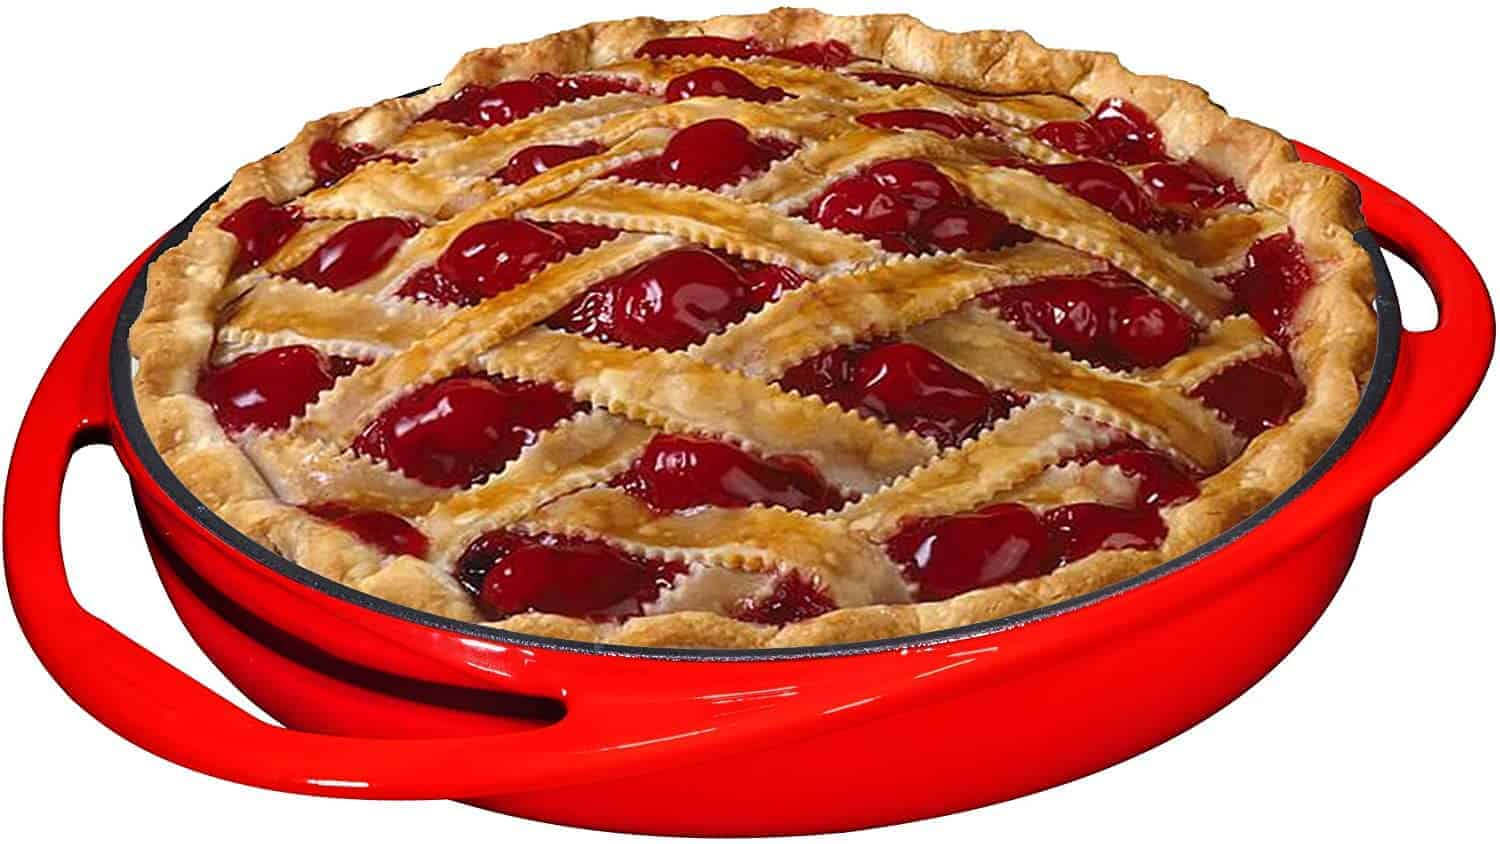 Best enamel Pie Baking Pan: Bruntmor Tarte Tatin dish